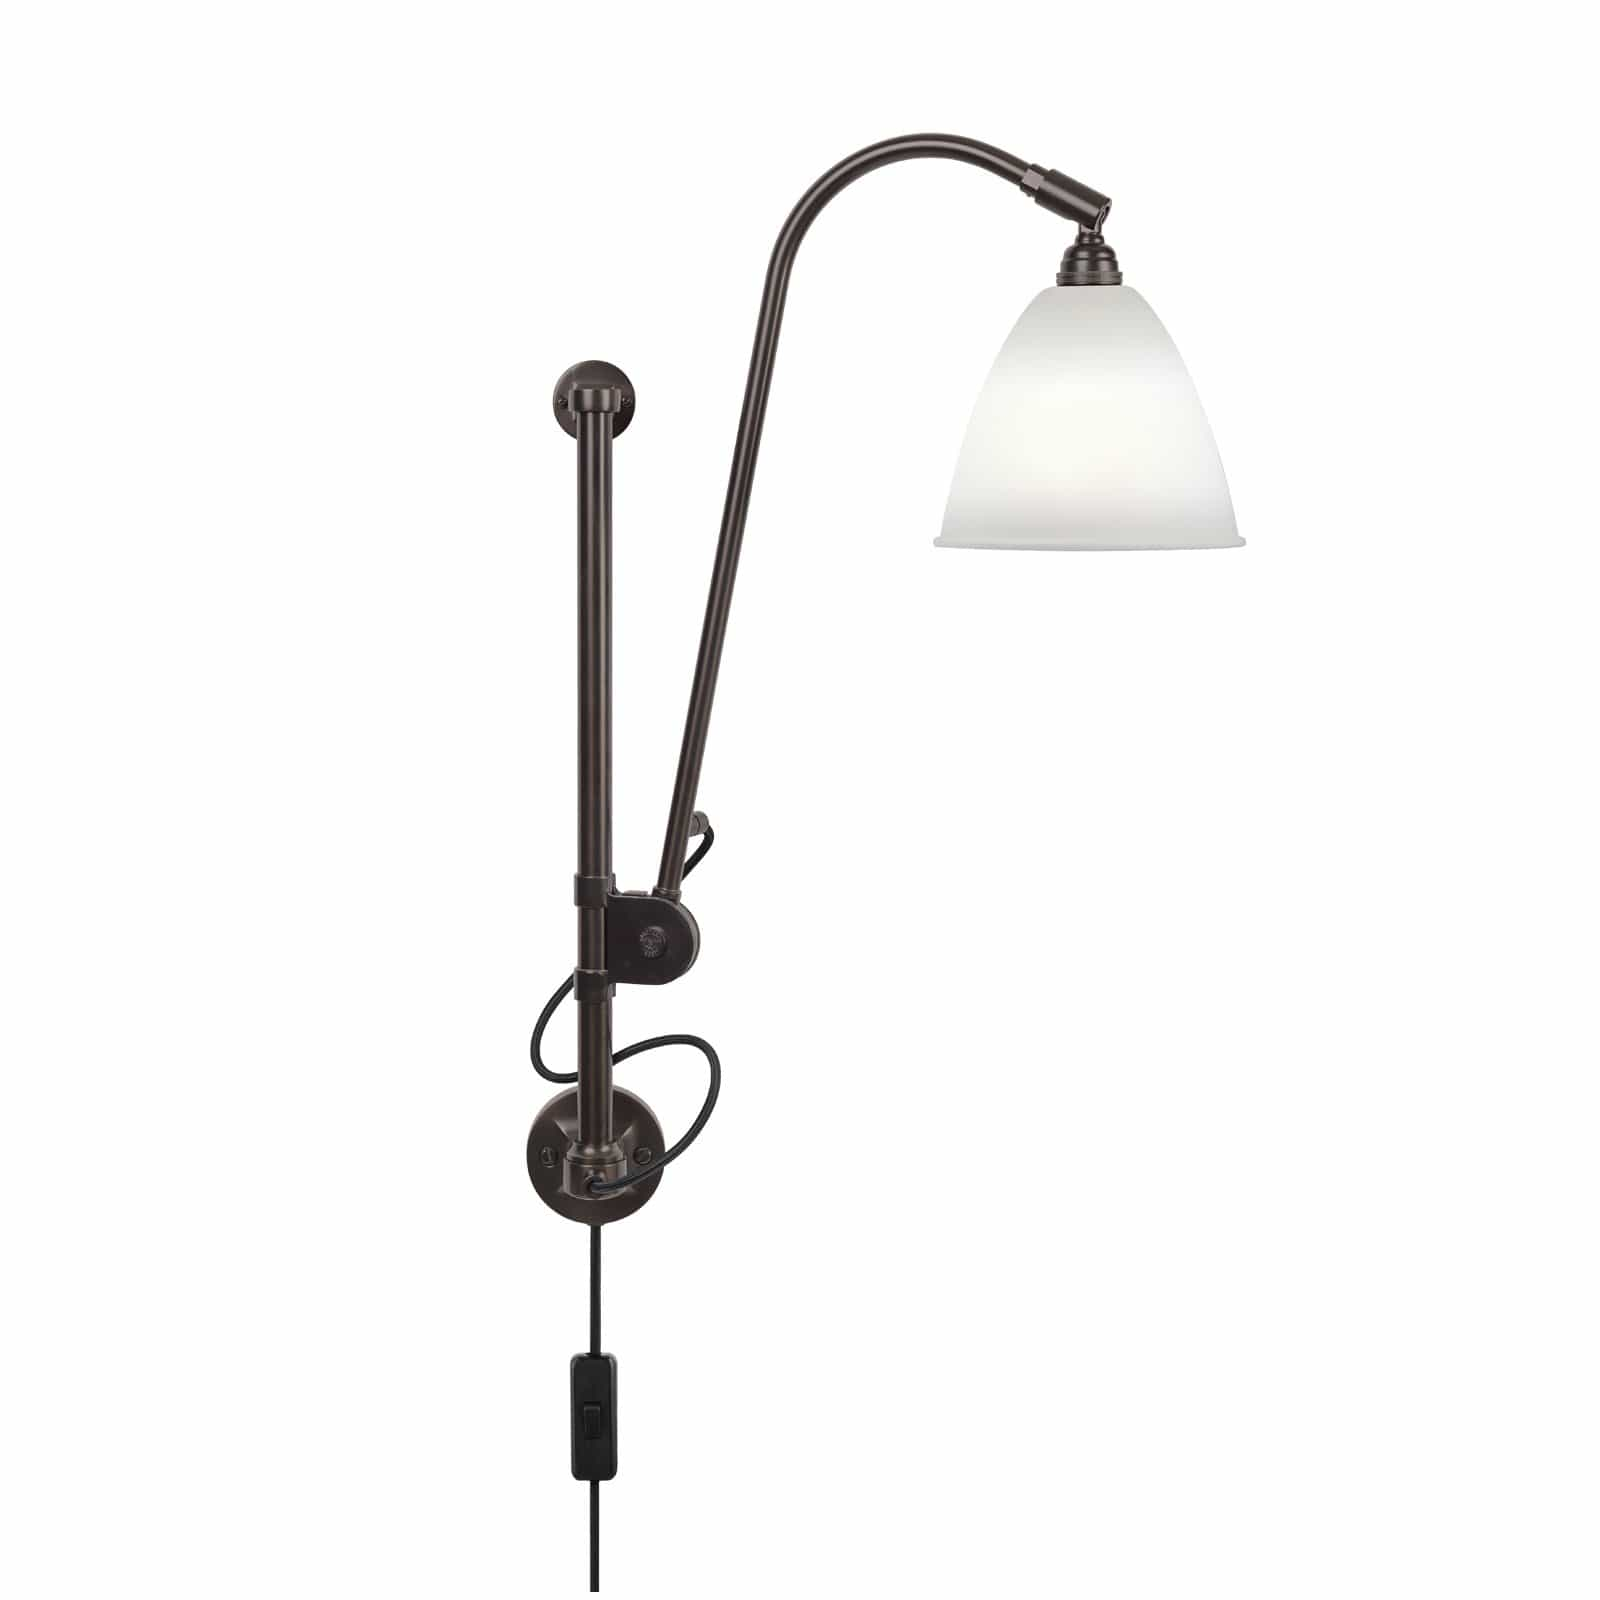 Gubi Lighting Black Brass / Bone China BL5 Wall Lamp